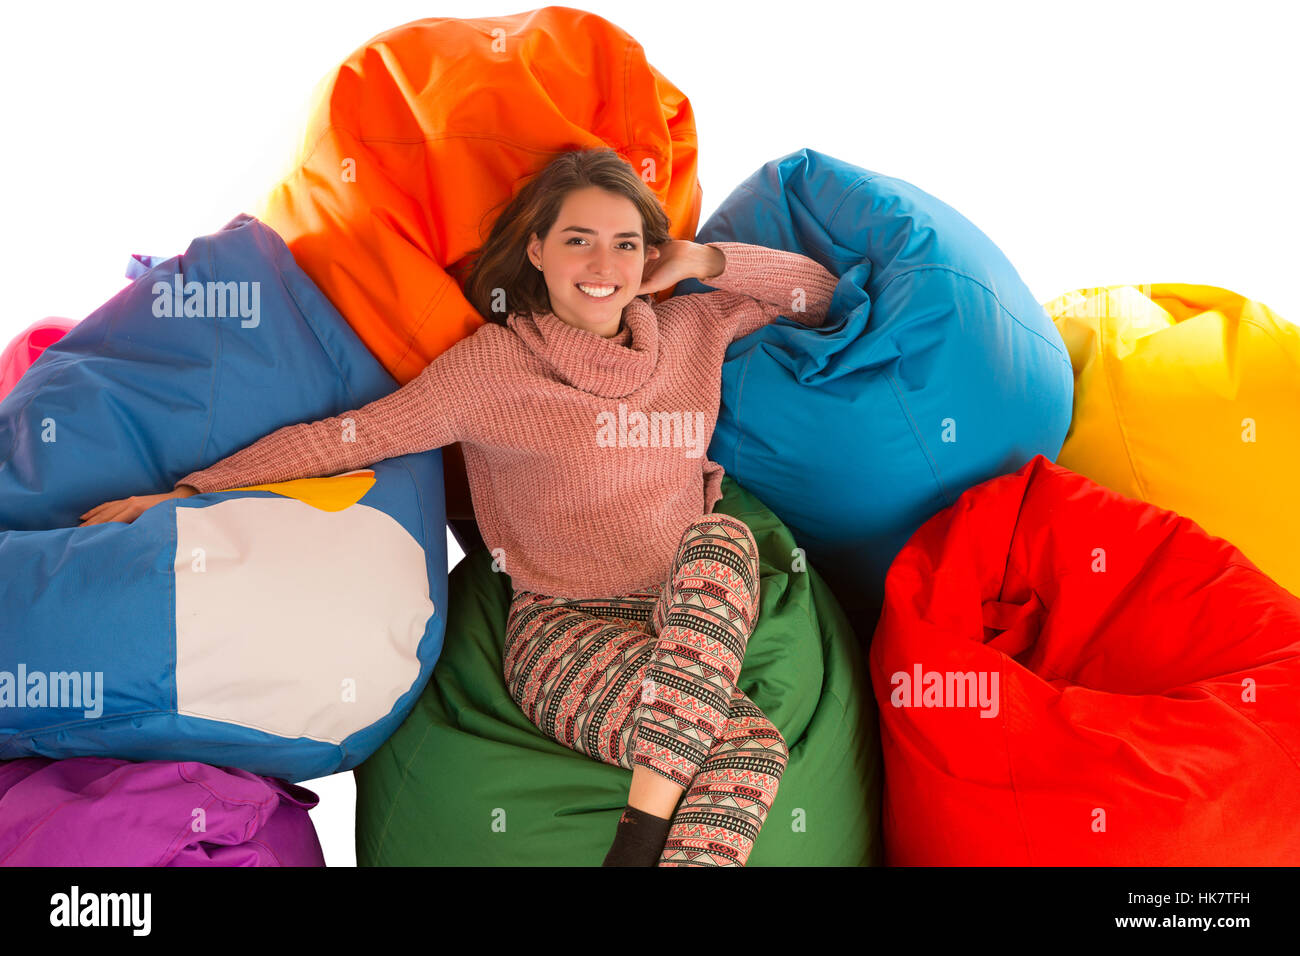 Young cute woman sitting between beanbag chairs isolated on white background - Stock Image